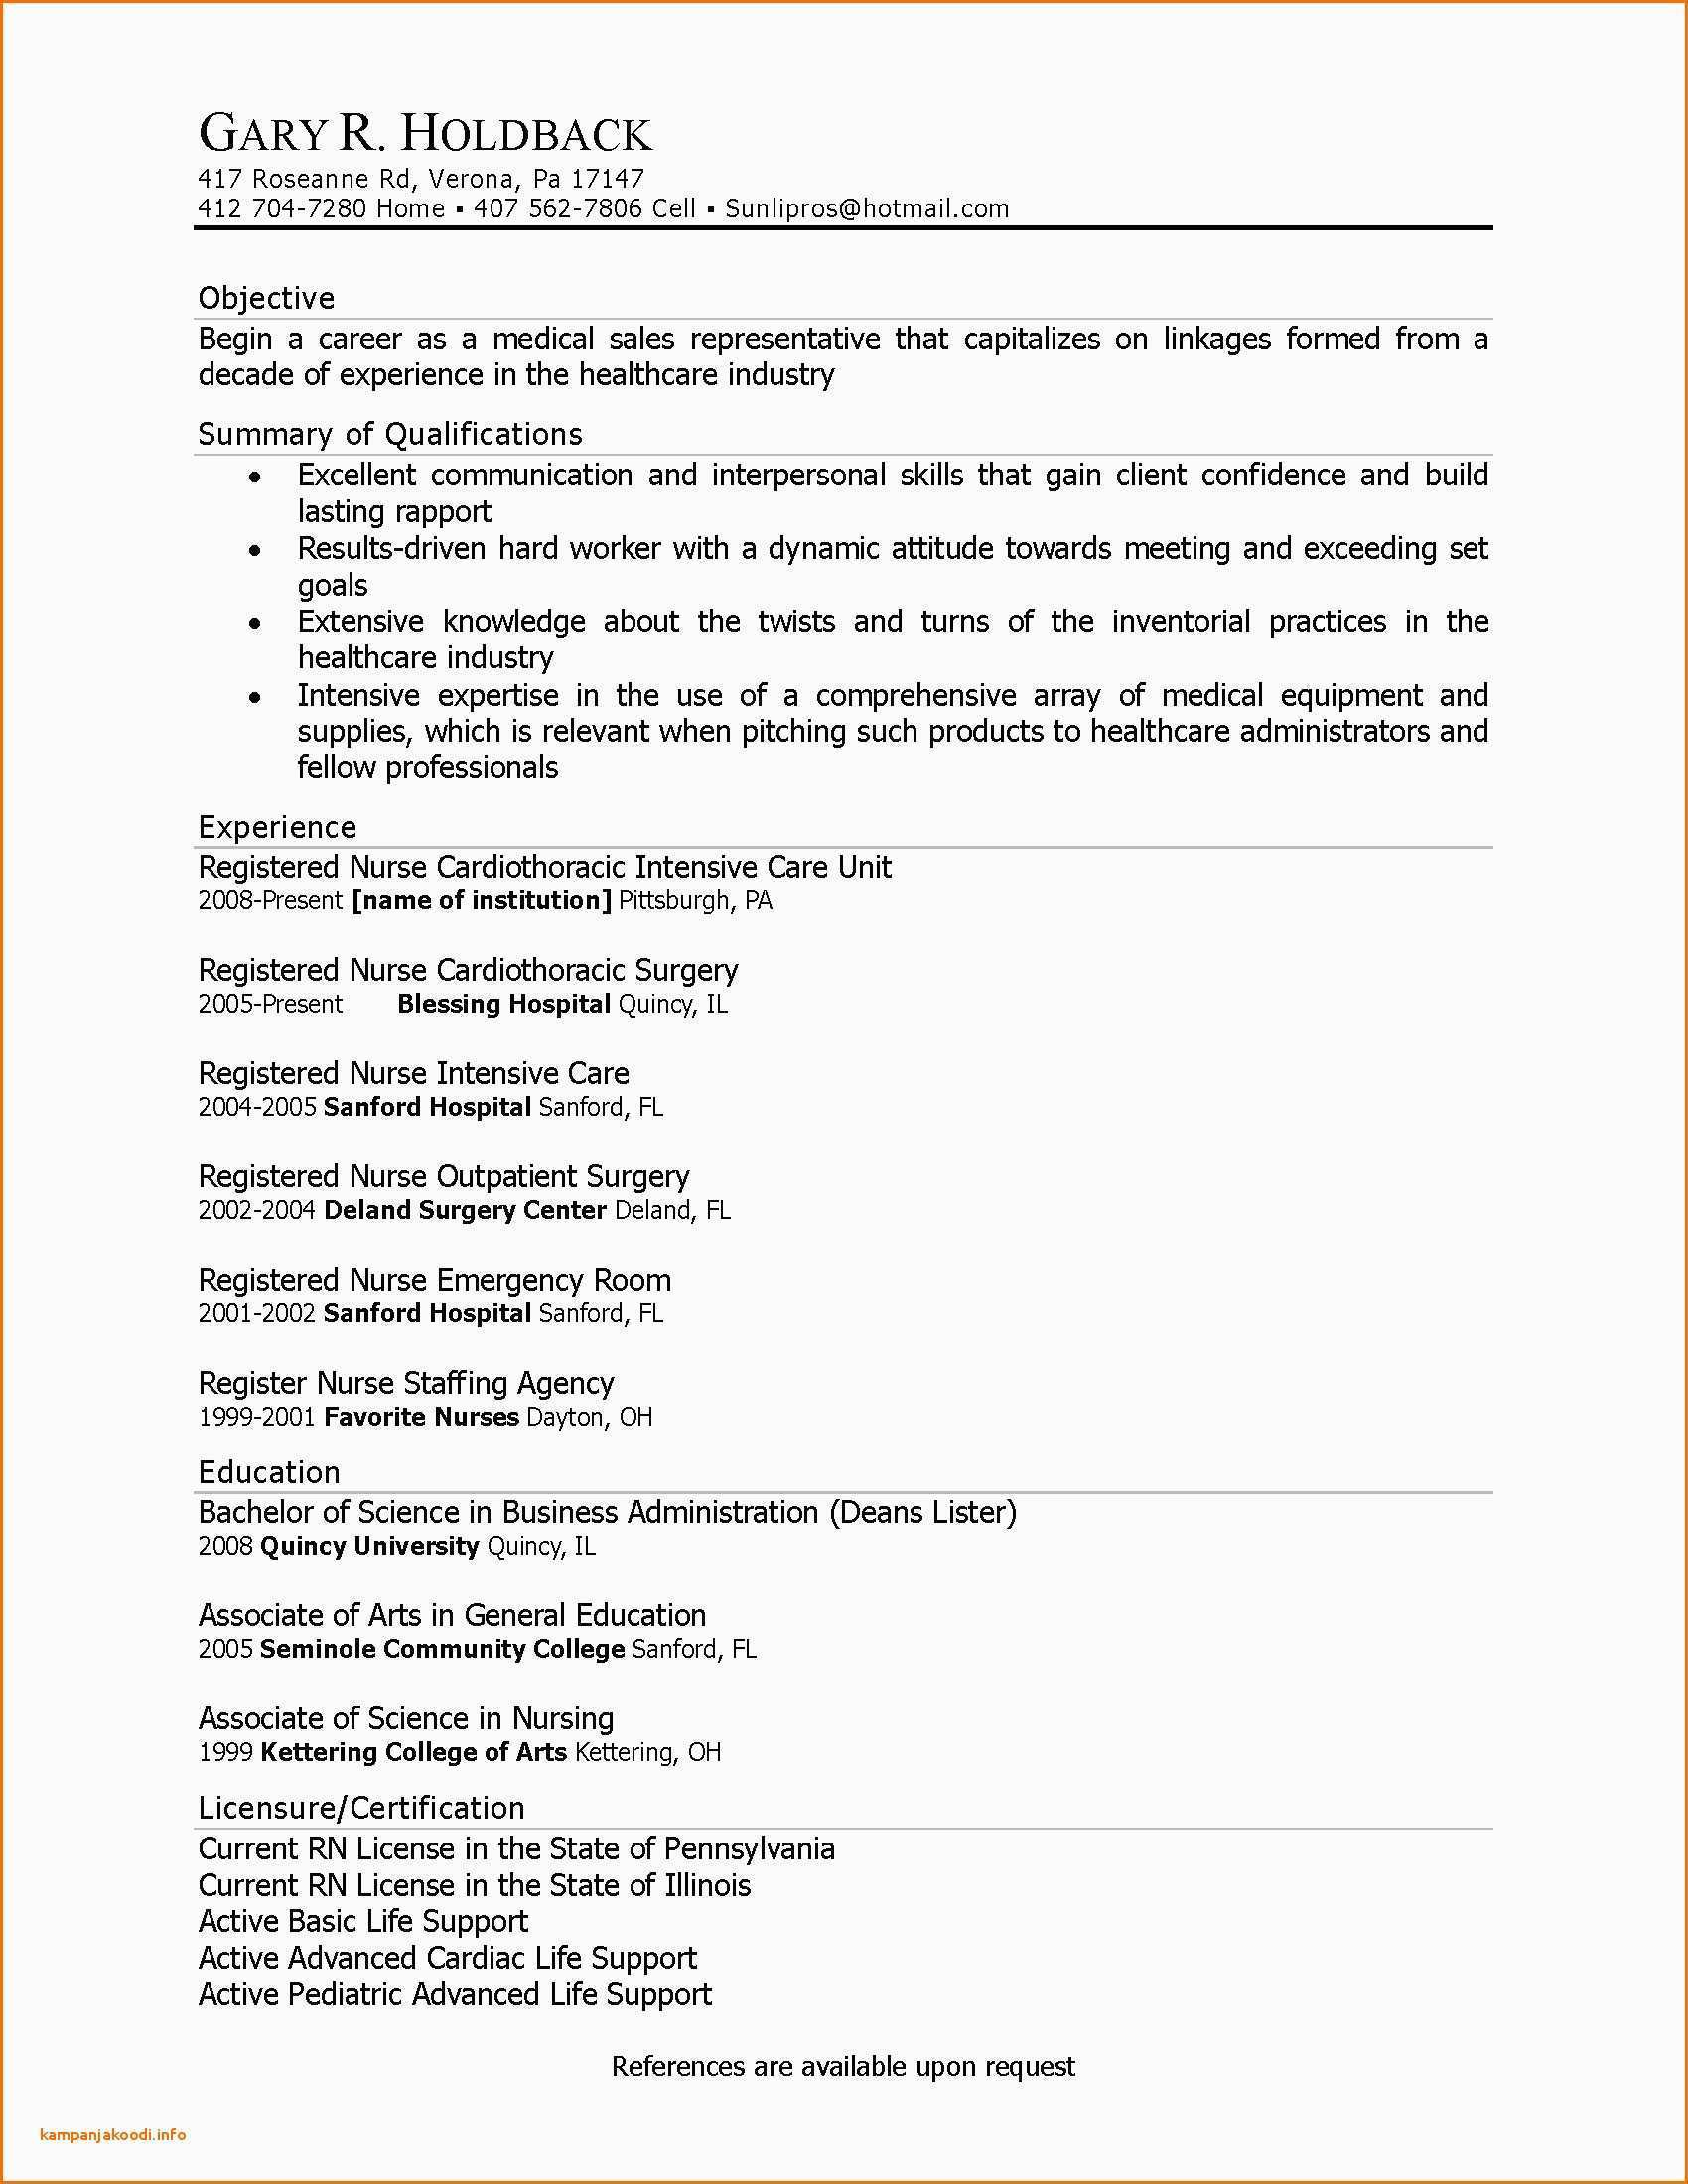 Resume Objective Statement Objective Example For Resume Icu Nurse Resume Objective Examples Luxury Best Charge Nurse Resume Of Objective Example For Resume resume objective statement wikiresume.com